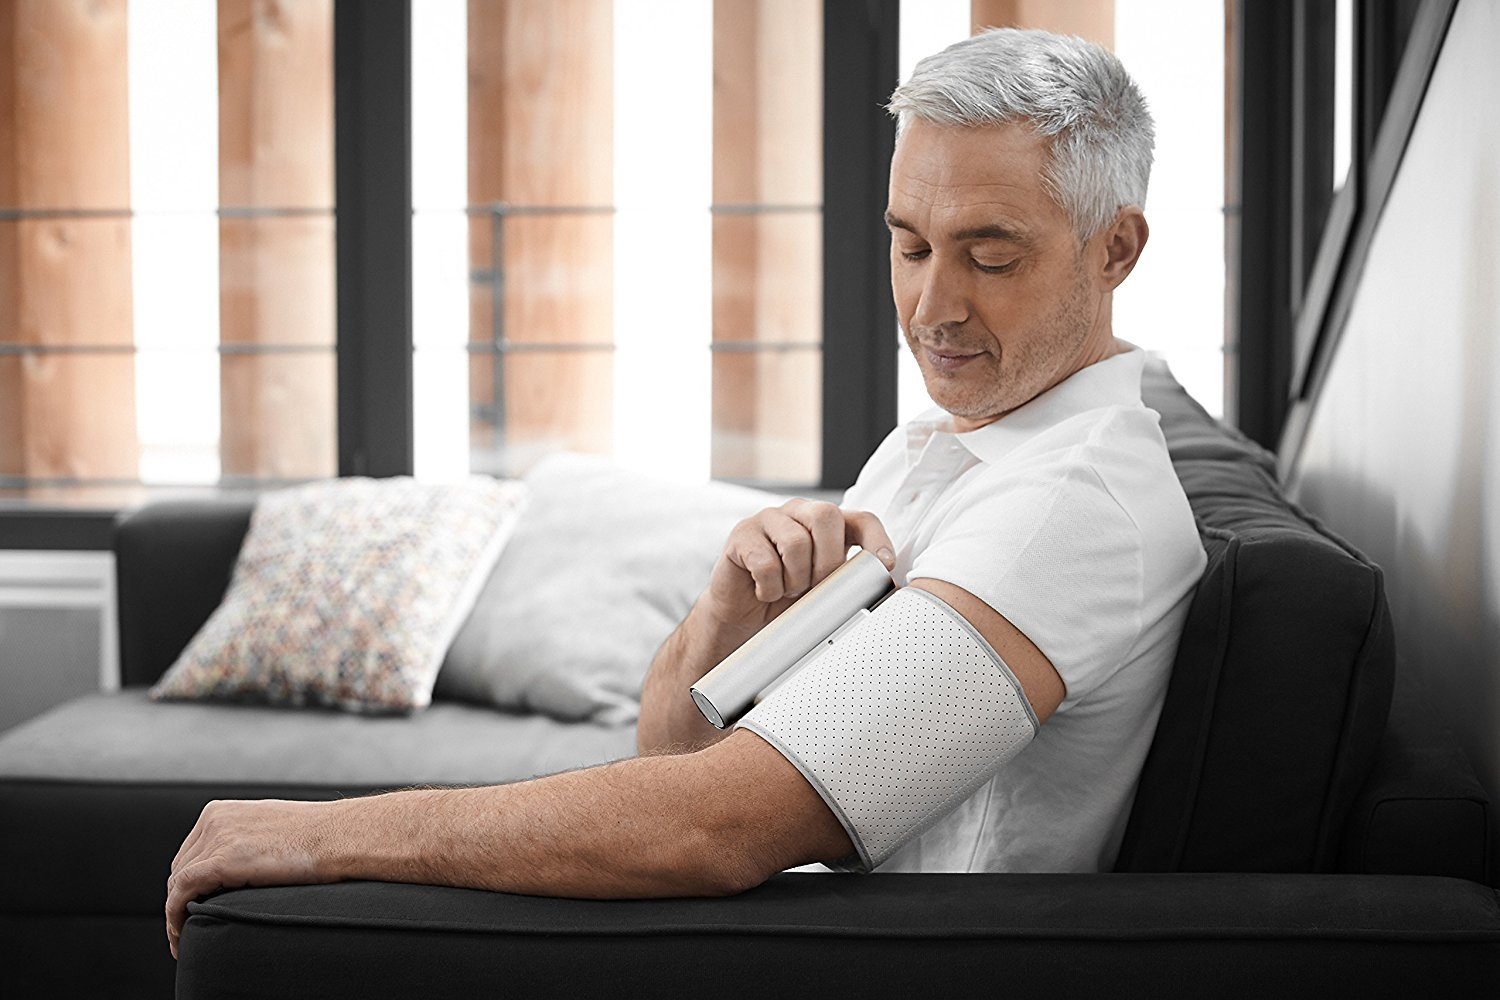 Nokia BPM Compact Wireless Blood Pressure Monitor image